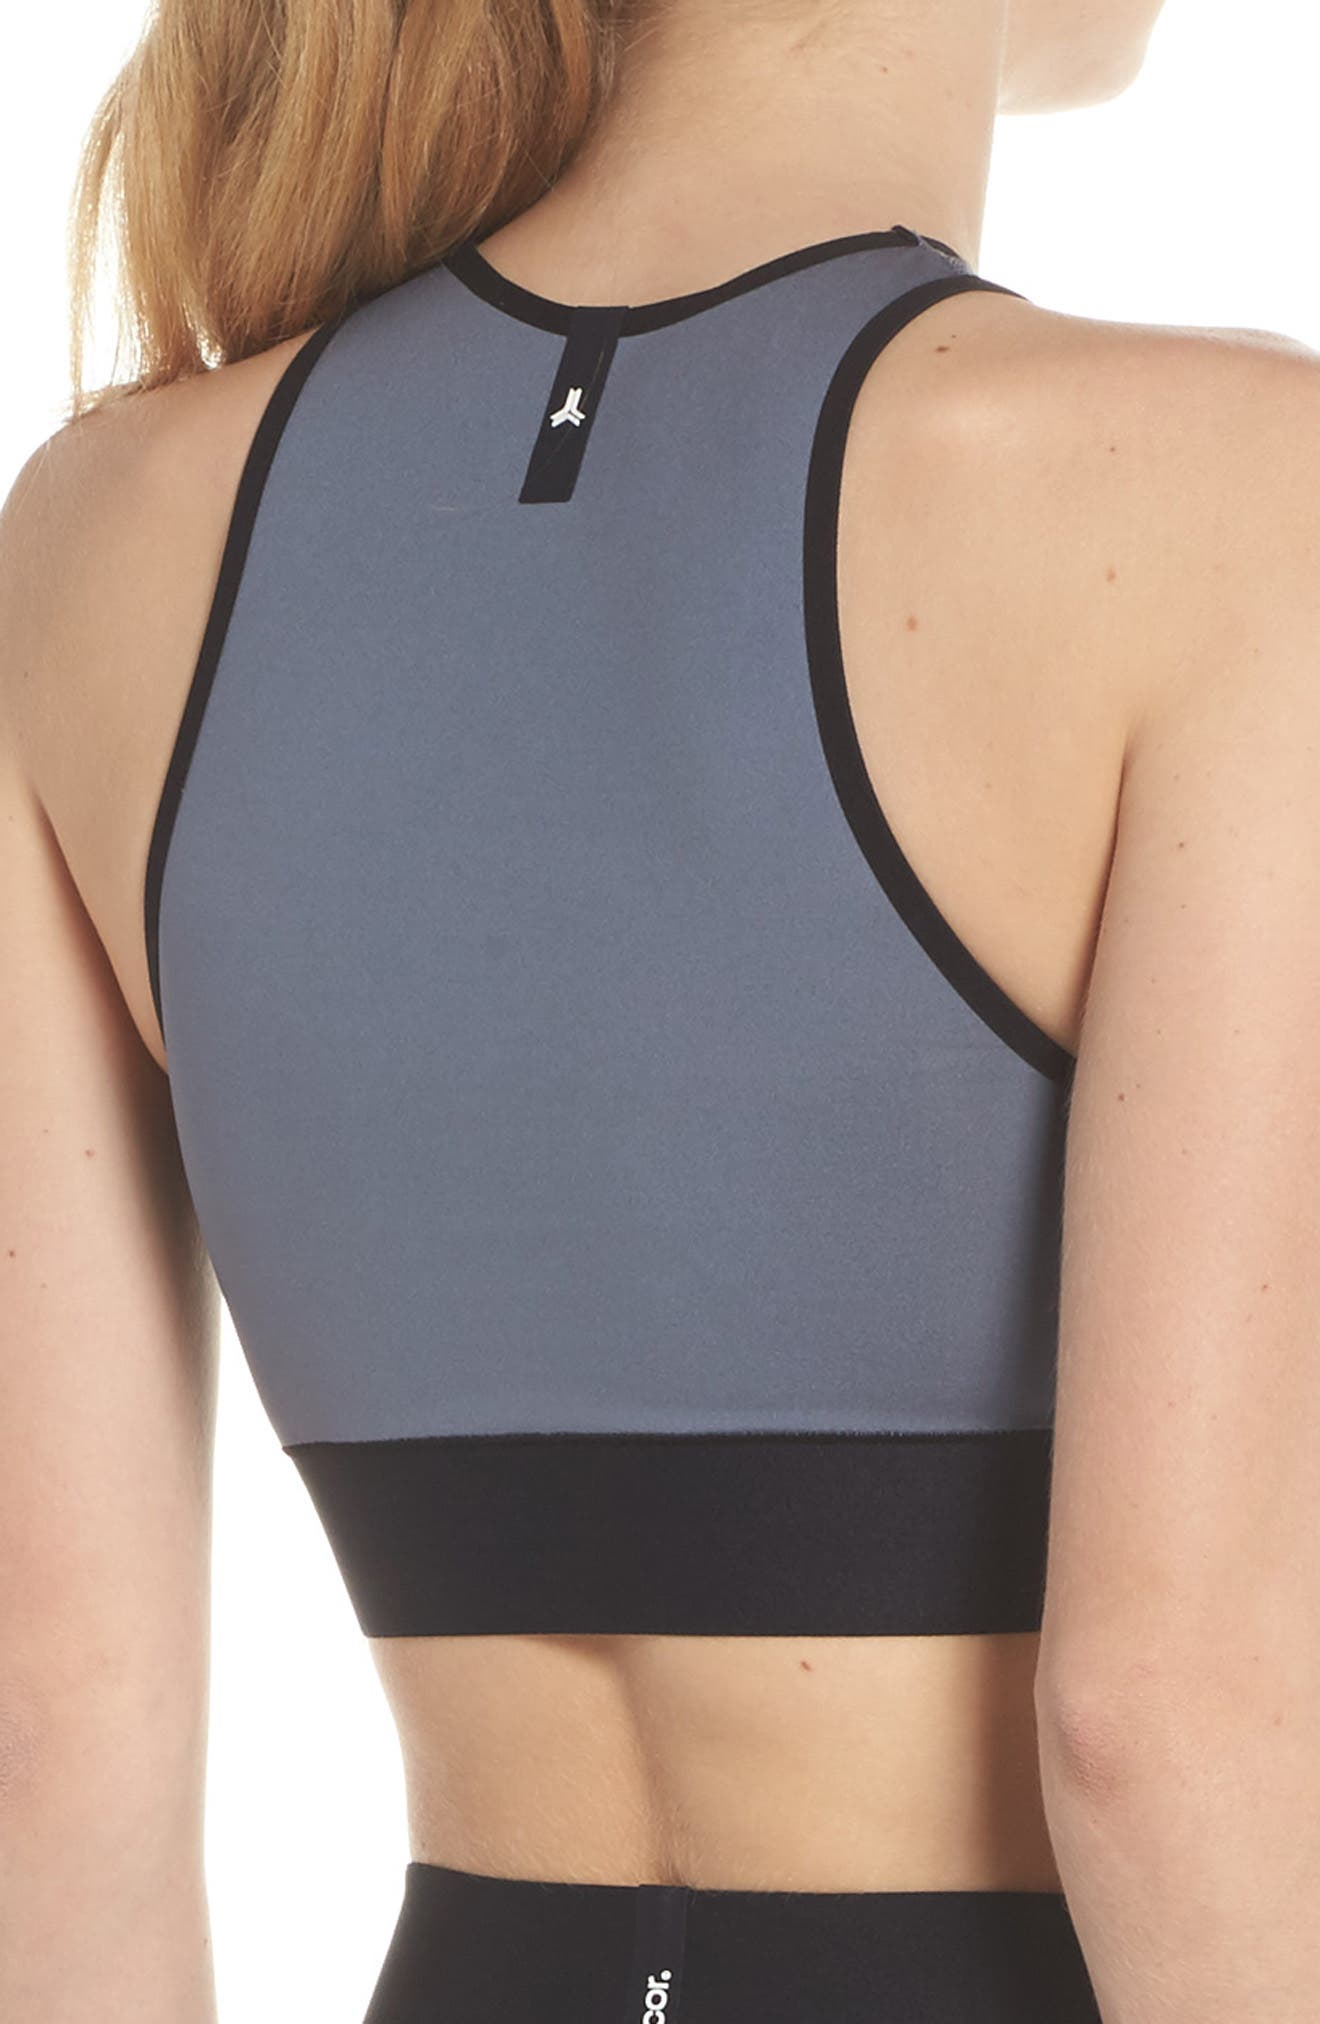 Altitude Lux Make Out Crop Top,                             Alternate thumbnail 2, color,                             Silver Brushed Steel